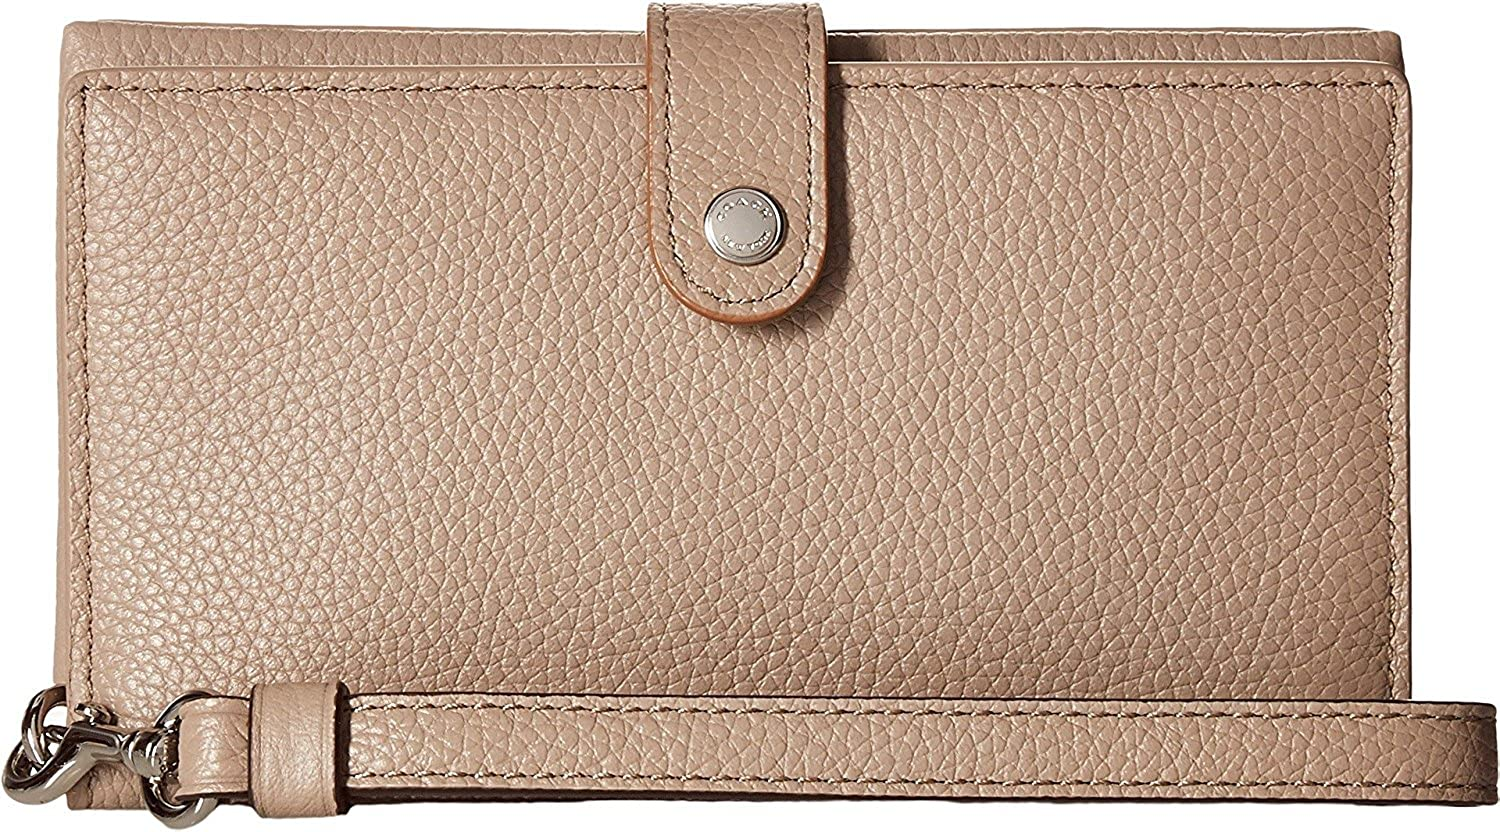 COACH Edgestain Phone Wristlet